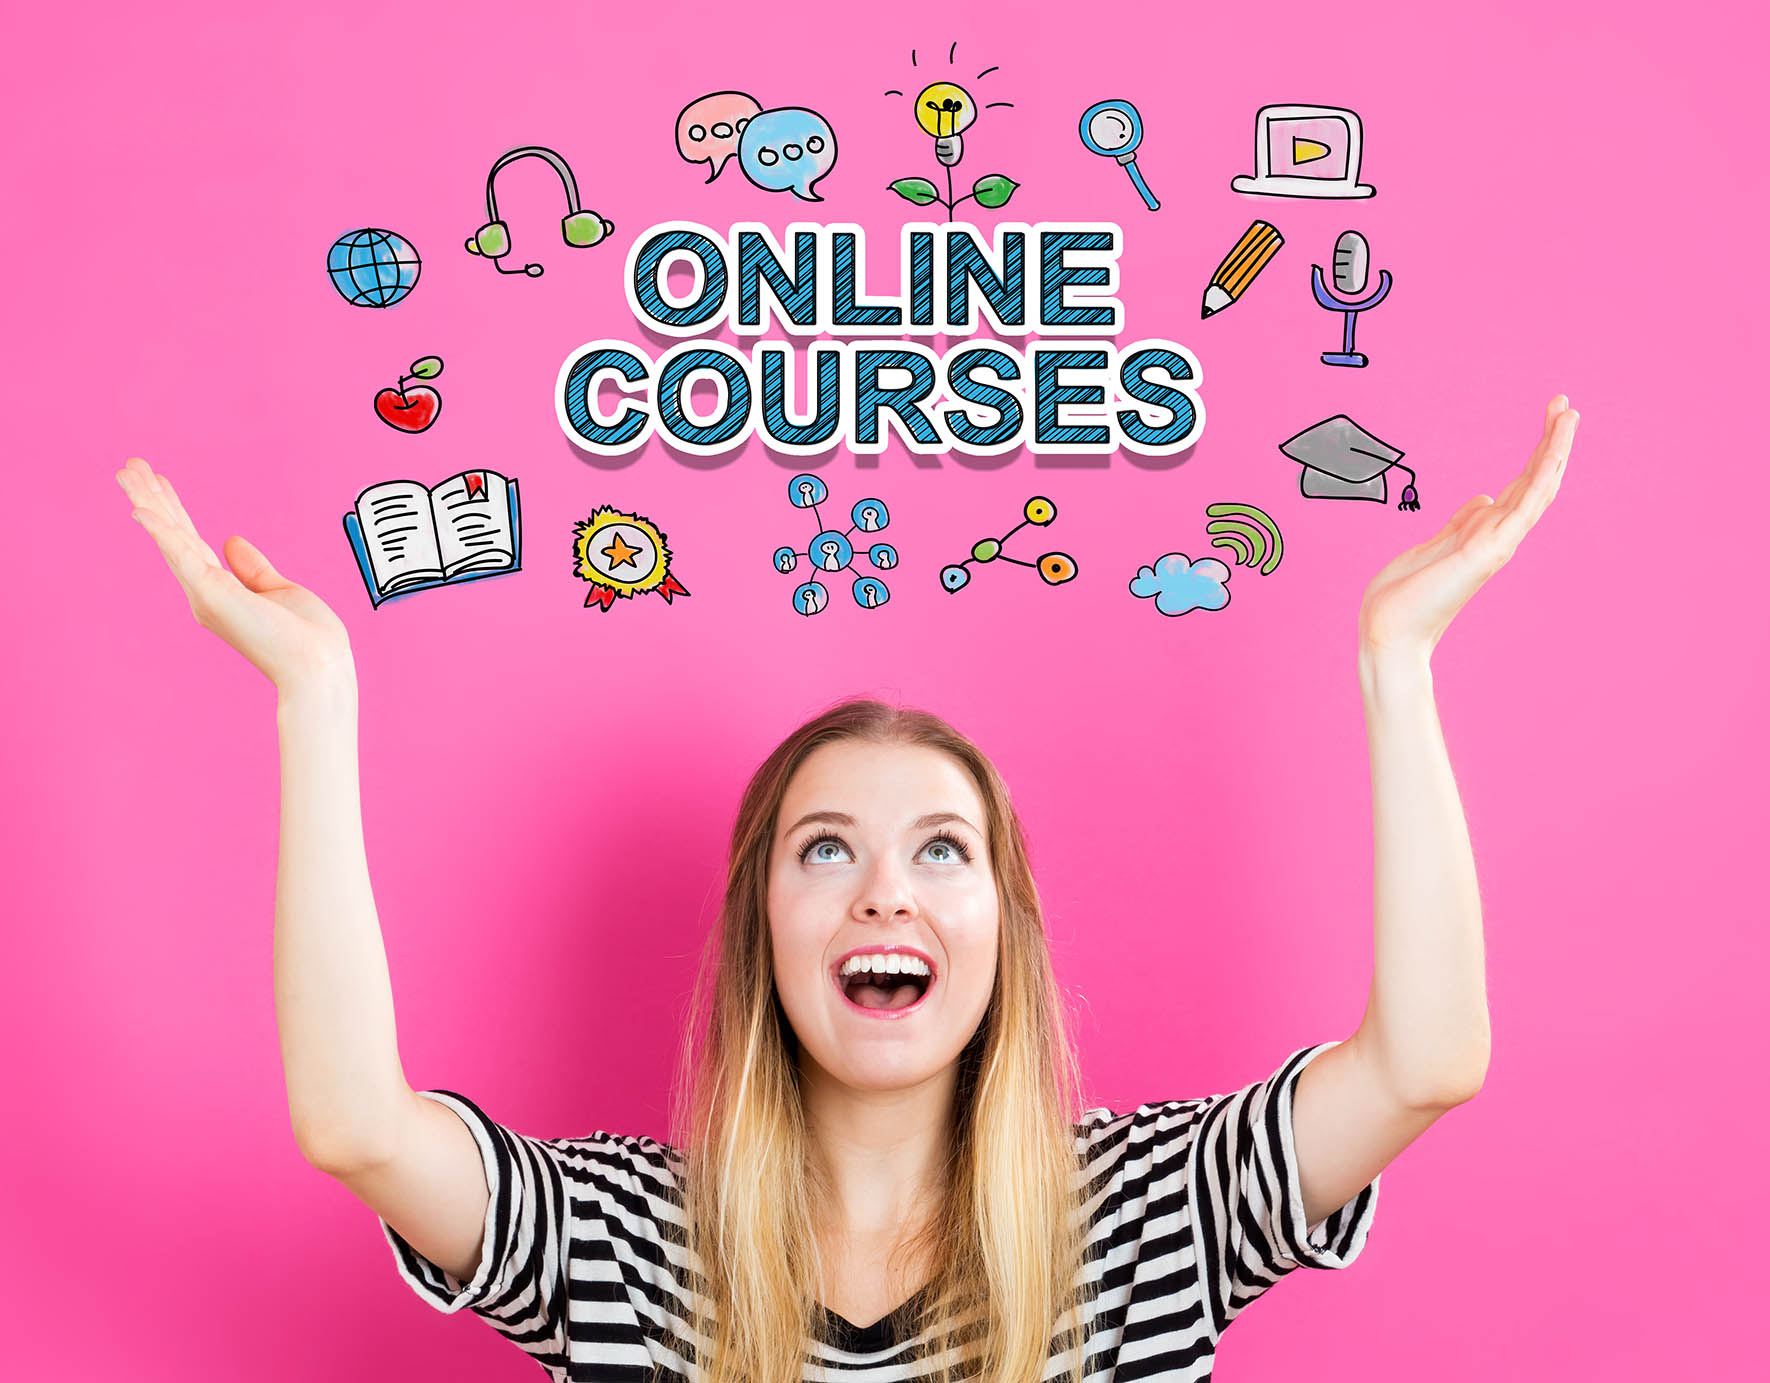 Online Courses concept with young woman reaching and looking upwards